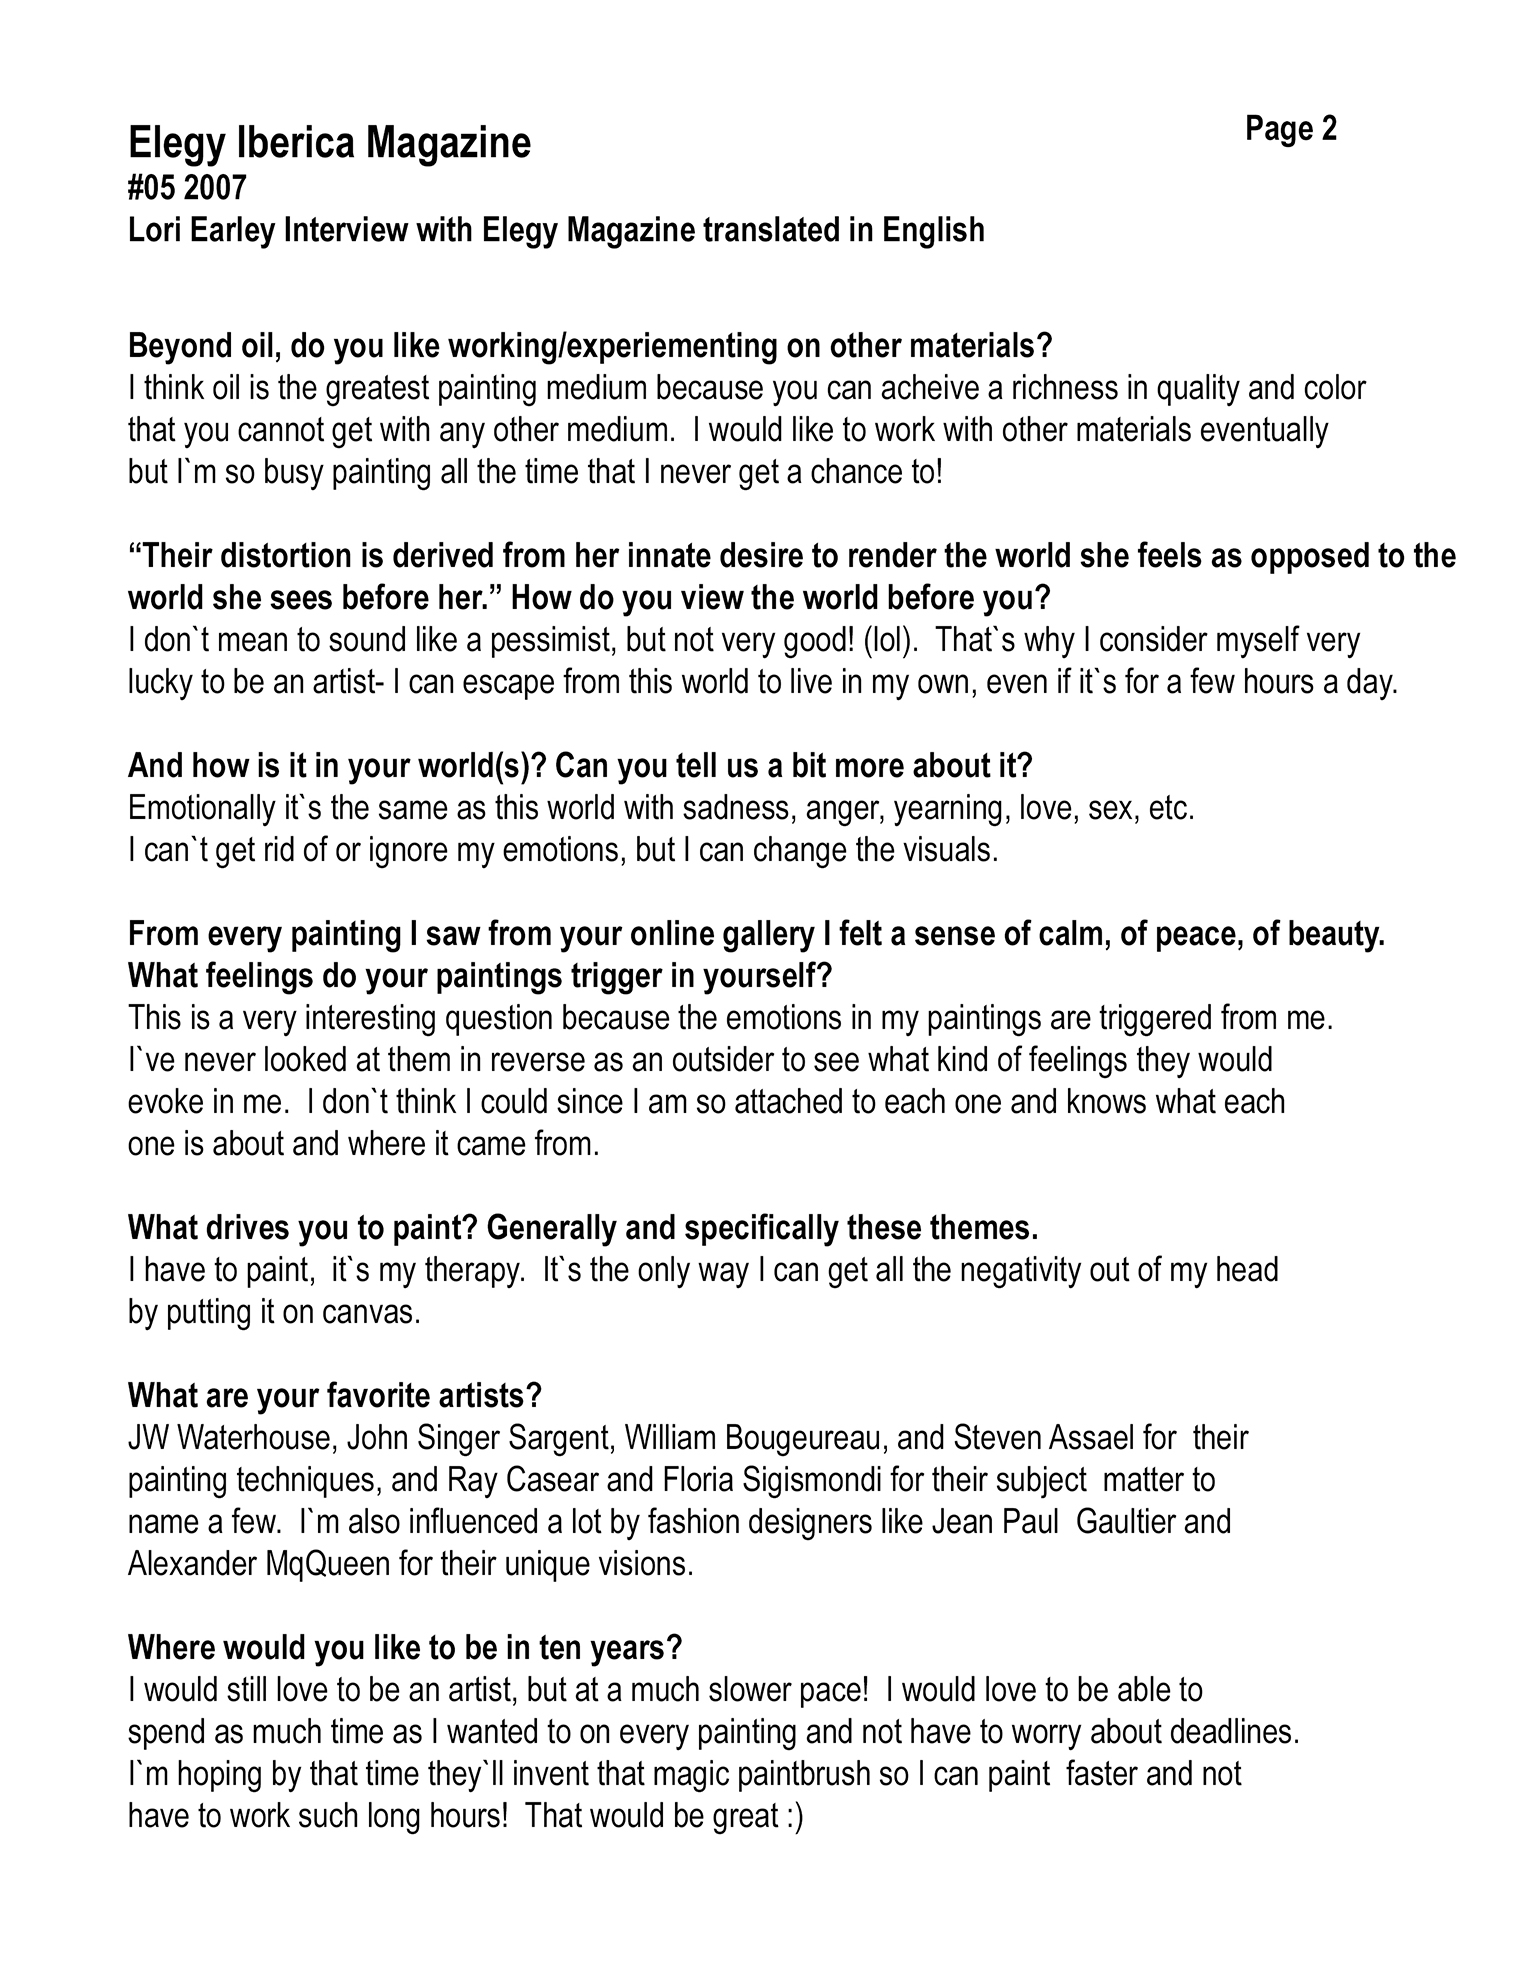 Elegy Iberica Interview text Page 2S.jpg